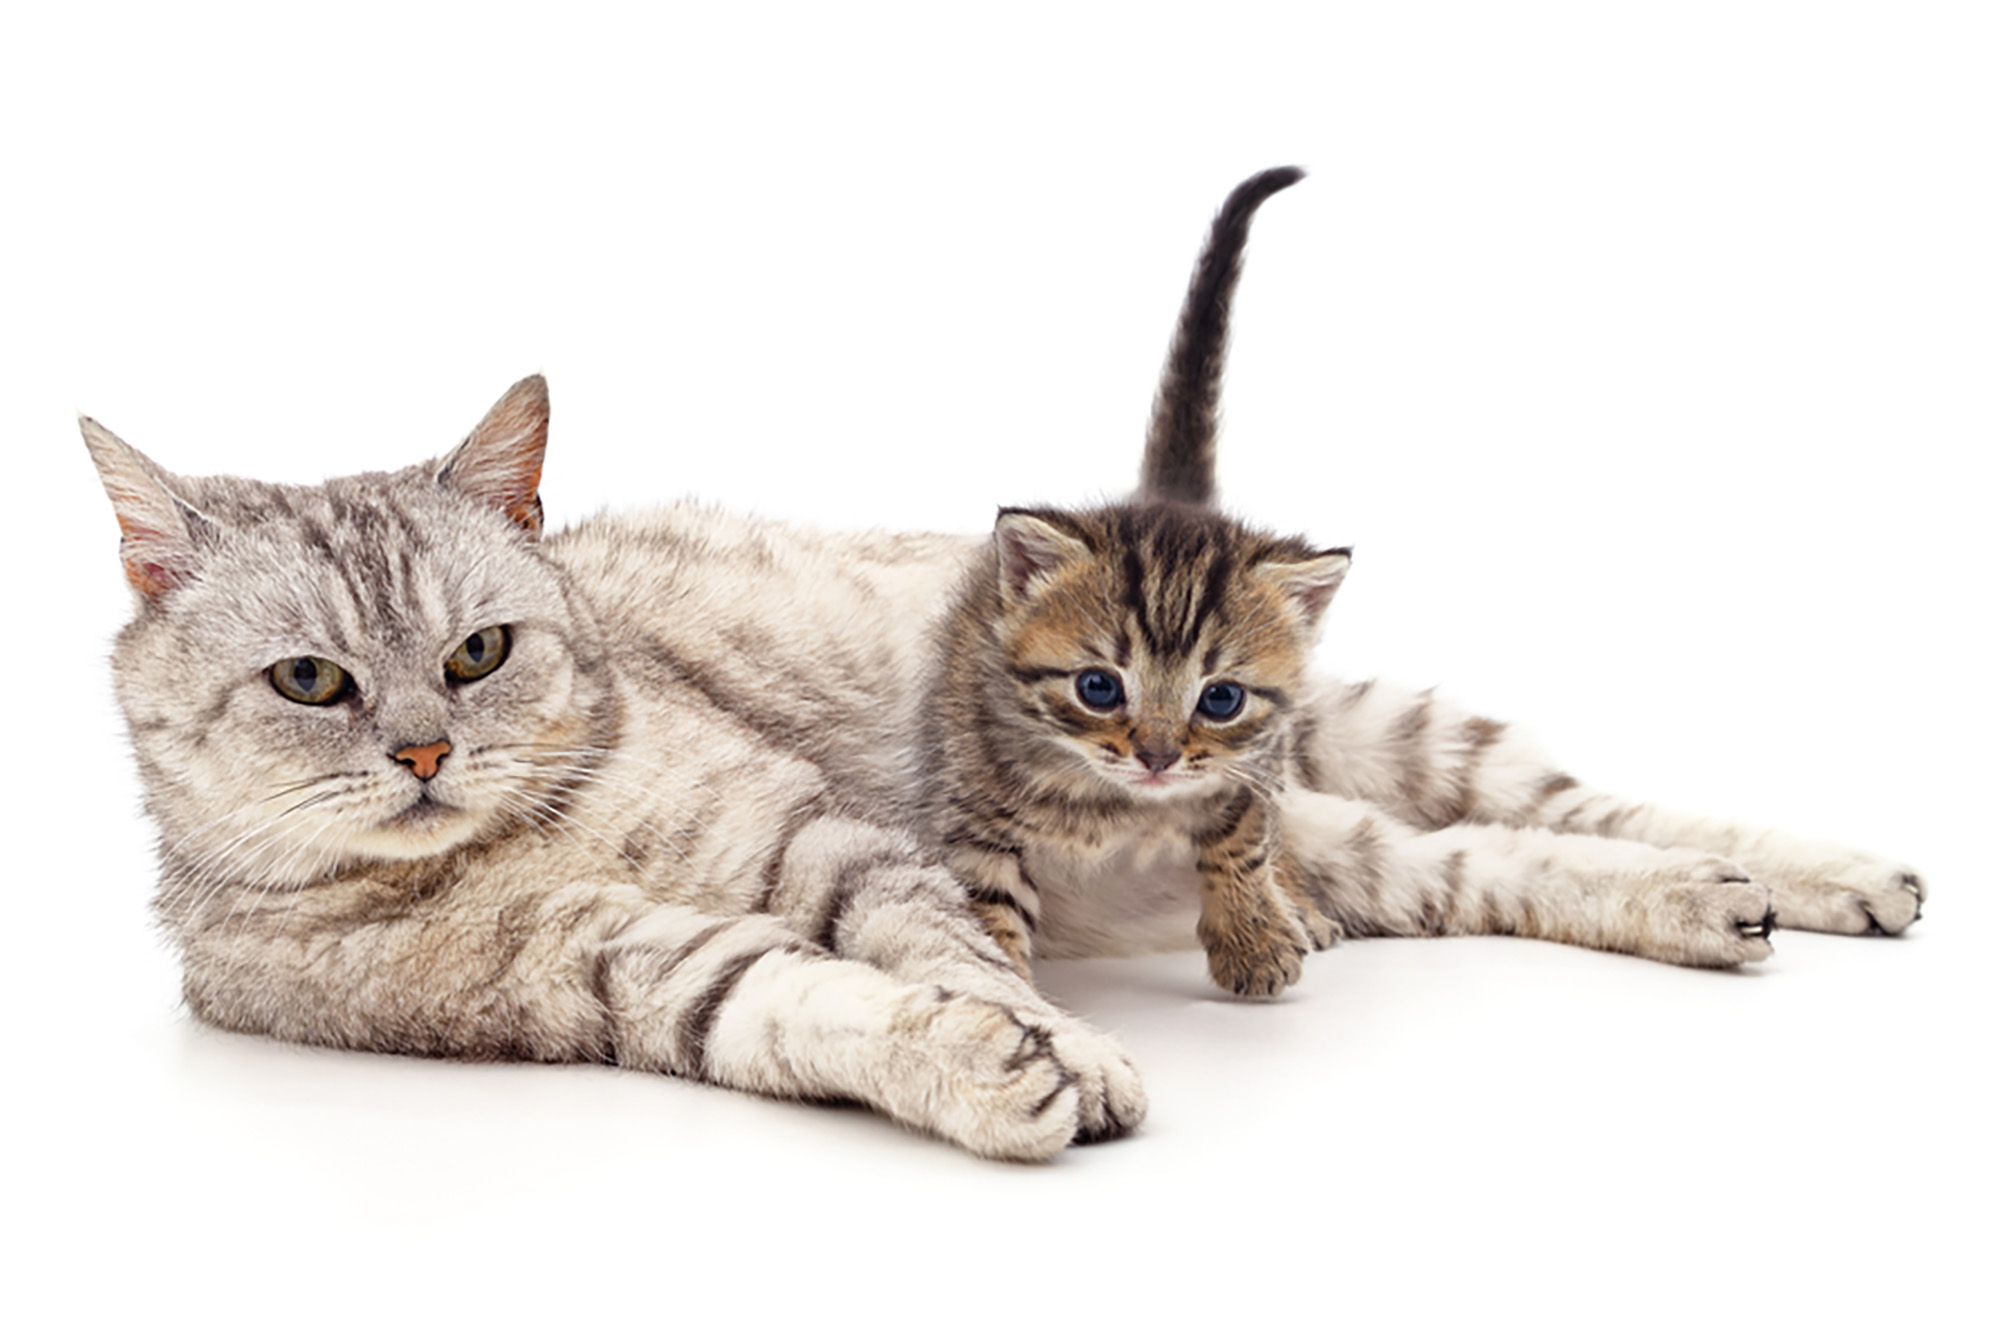 Image of a cat and kitten sitting together